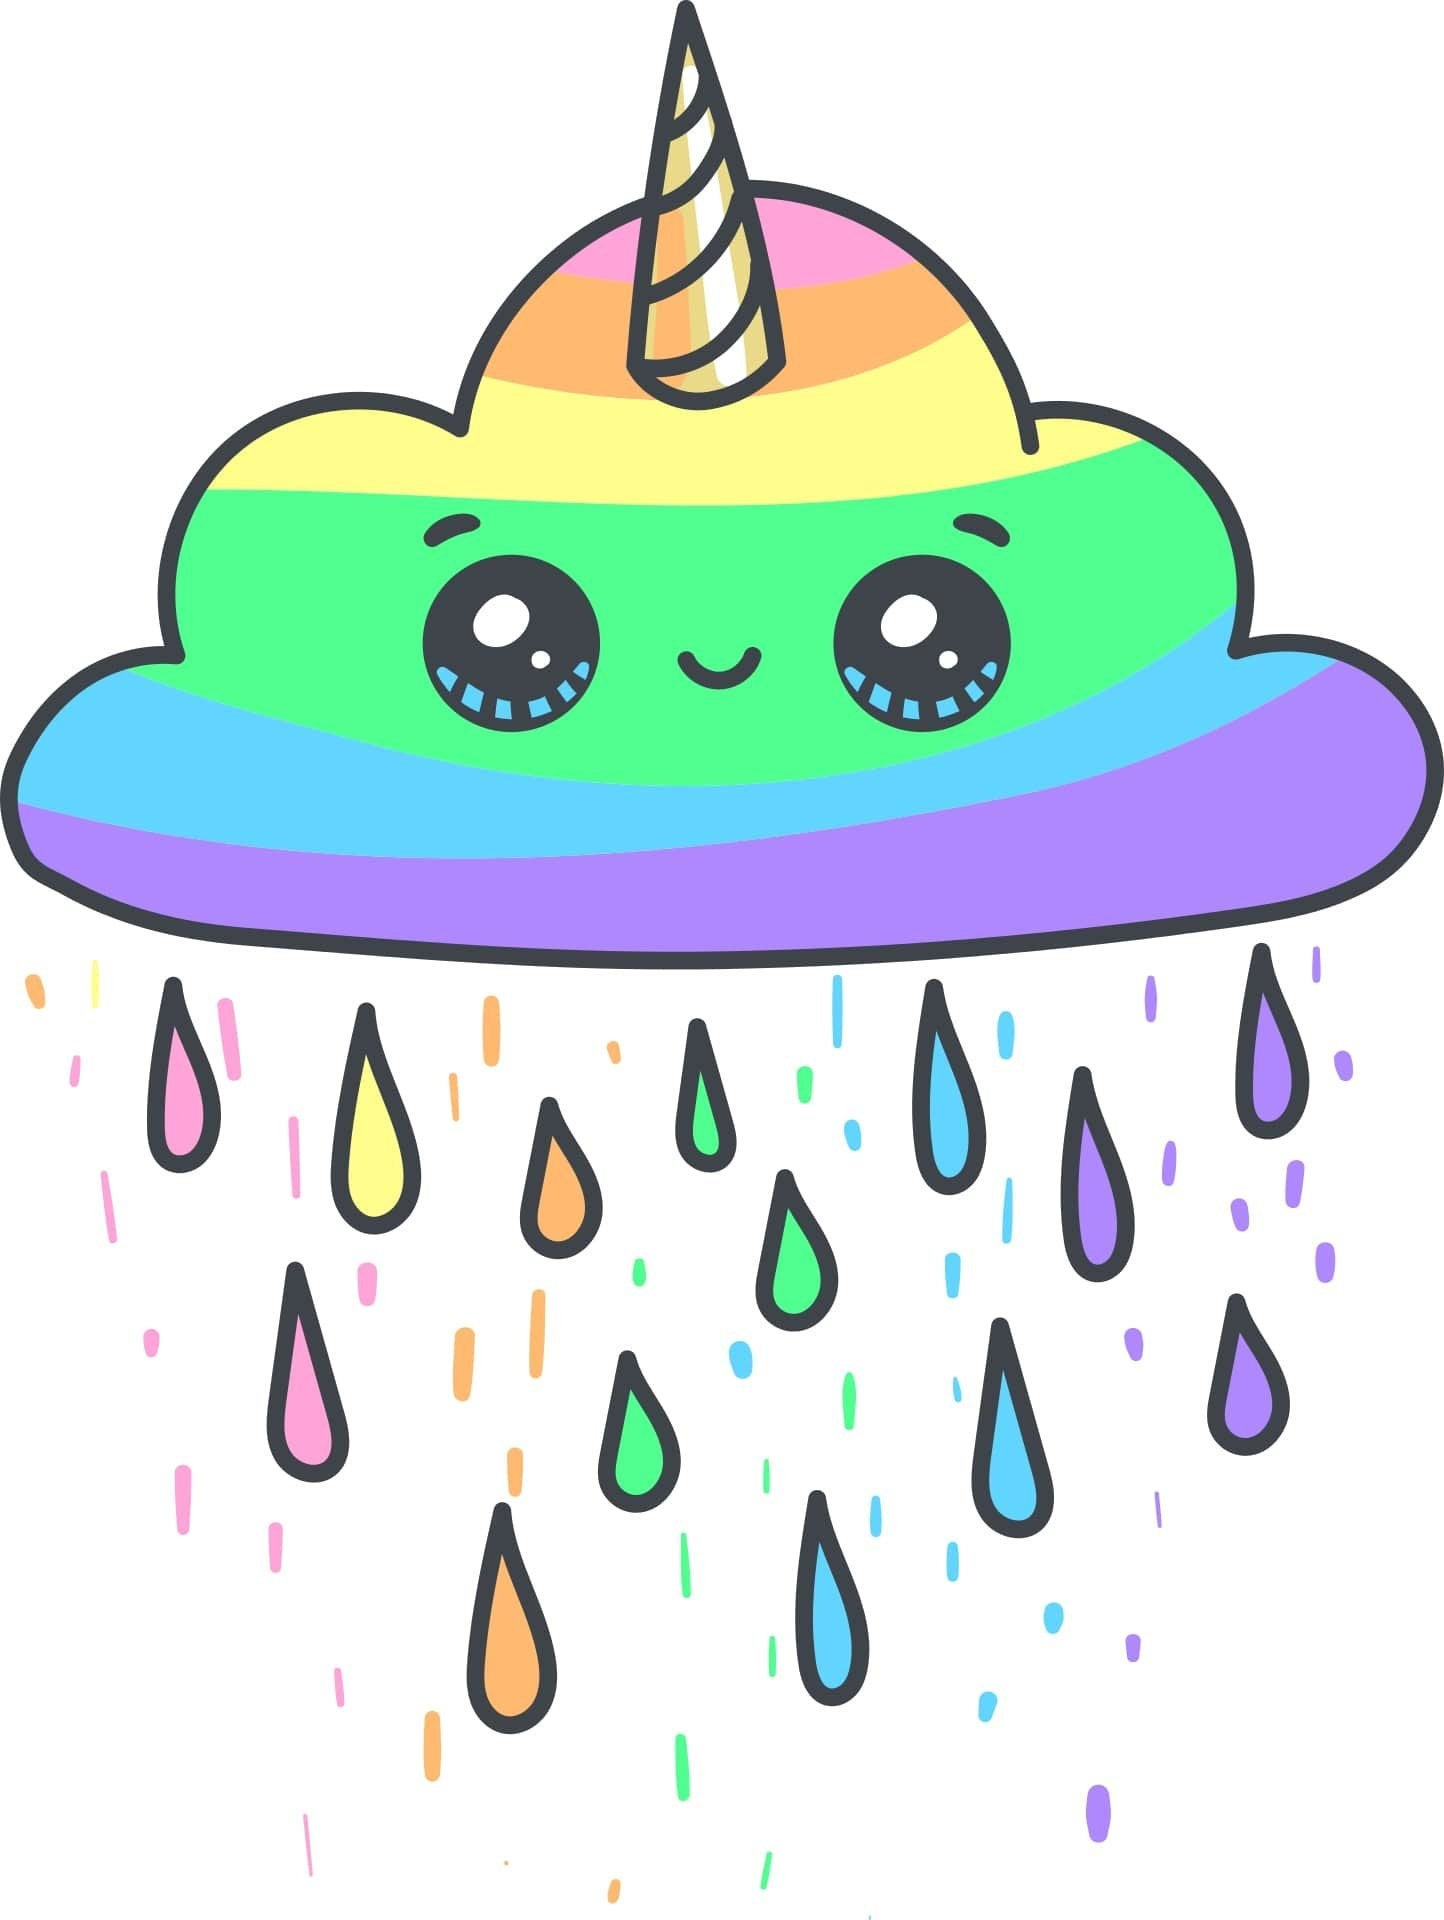 Cute Colorful Png - 3 CUTE CLOUD and STARS svg png jpg Rainbow Unicorn Colorful | PNGio